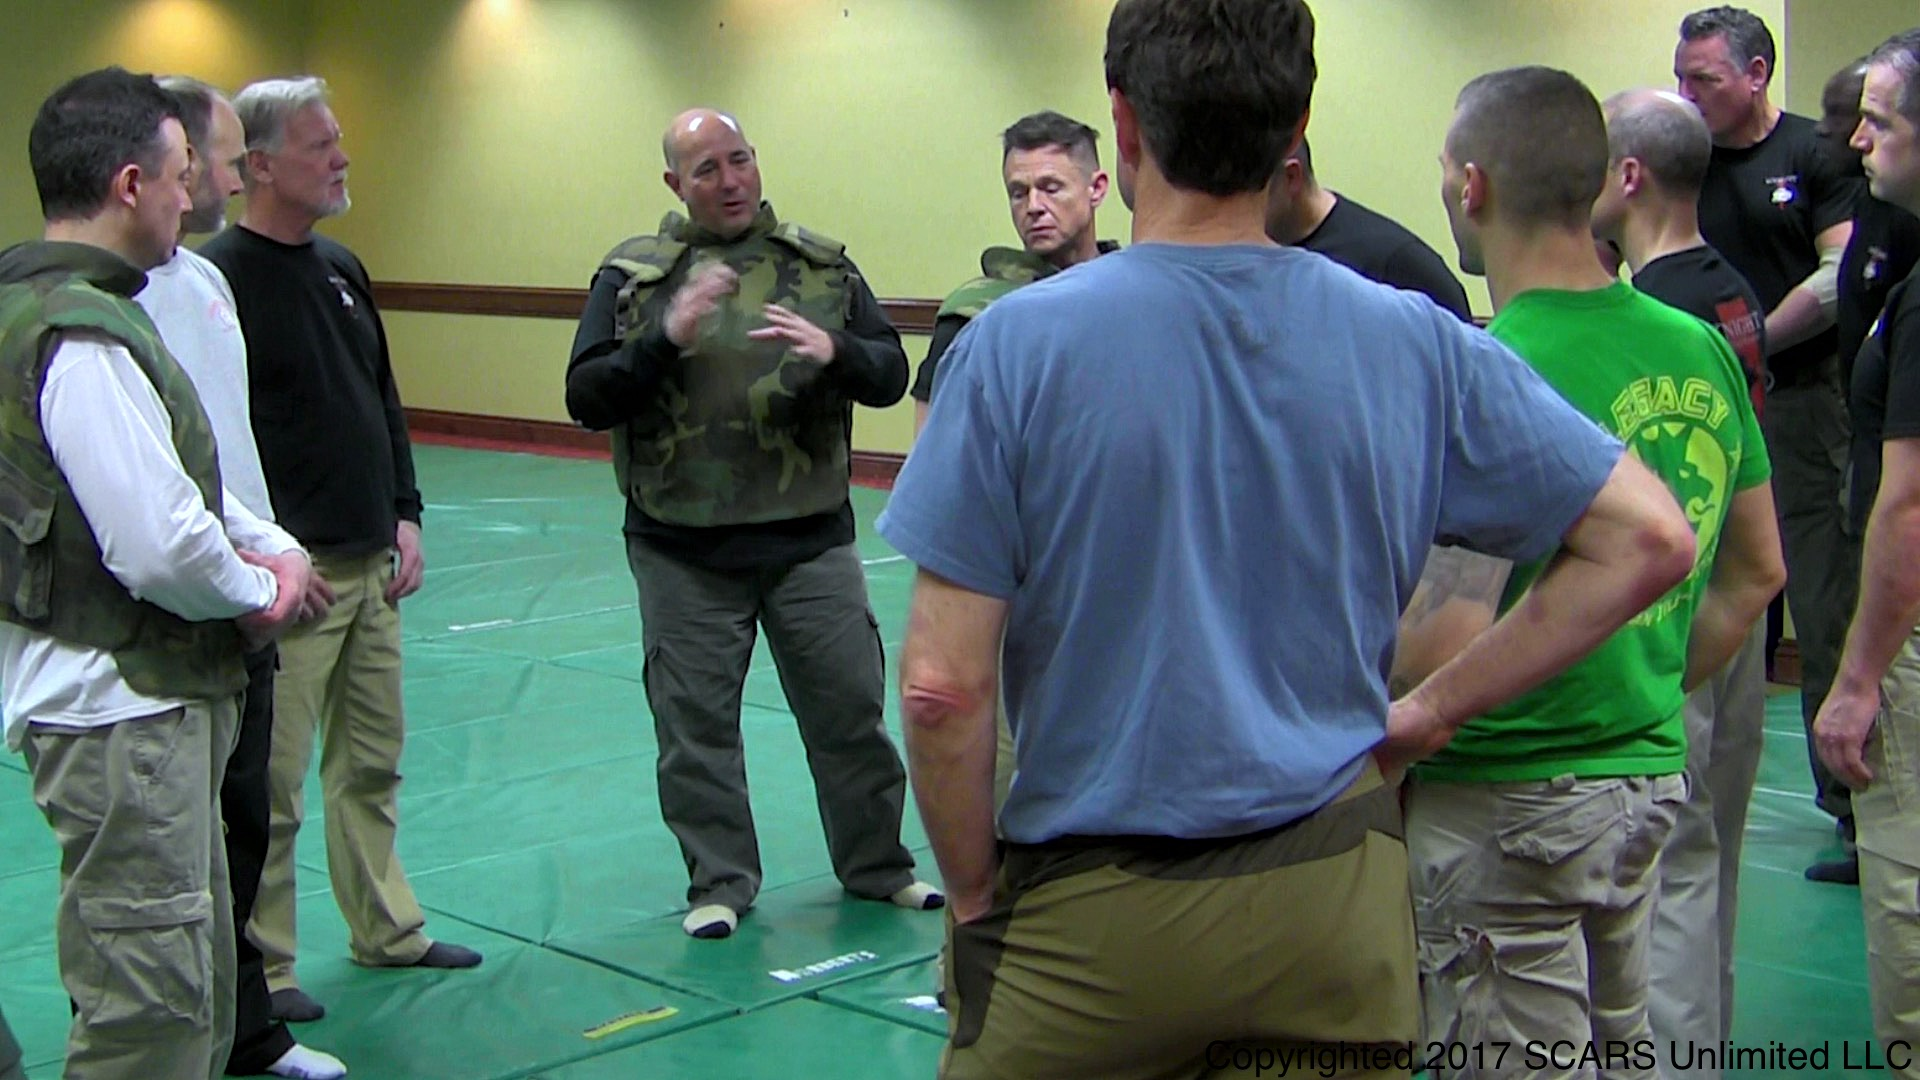 ex-krav maga instructor and professional fighter discuss how SCARS changed their perspective of real fighting.